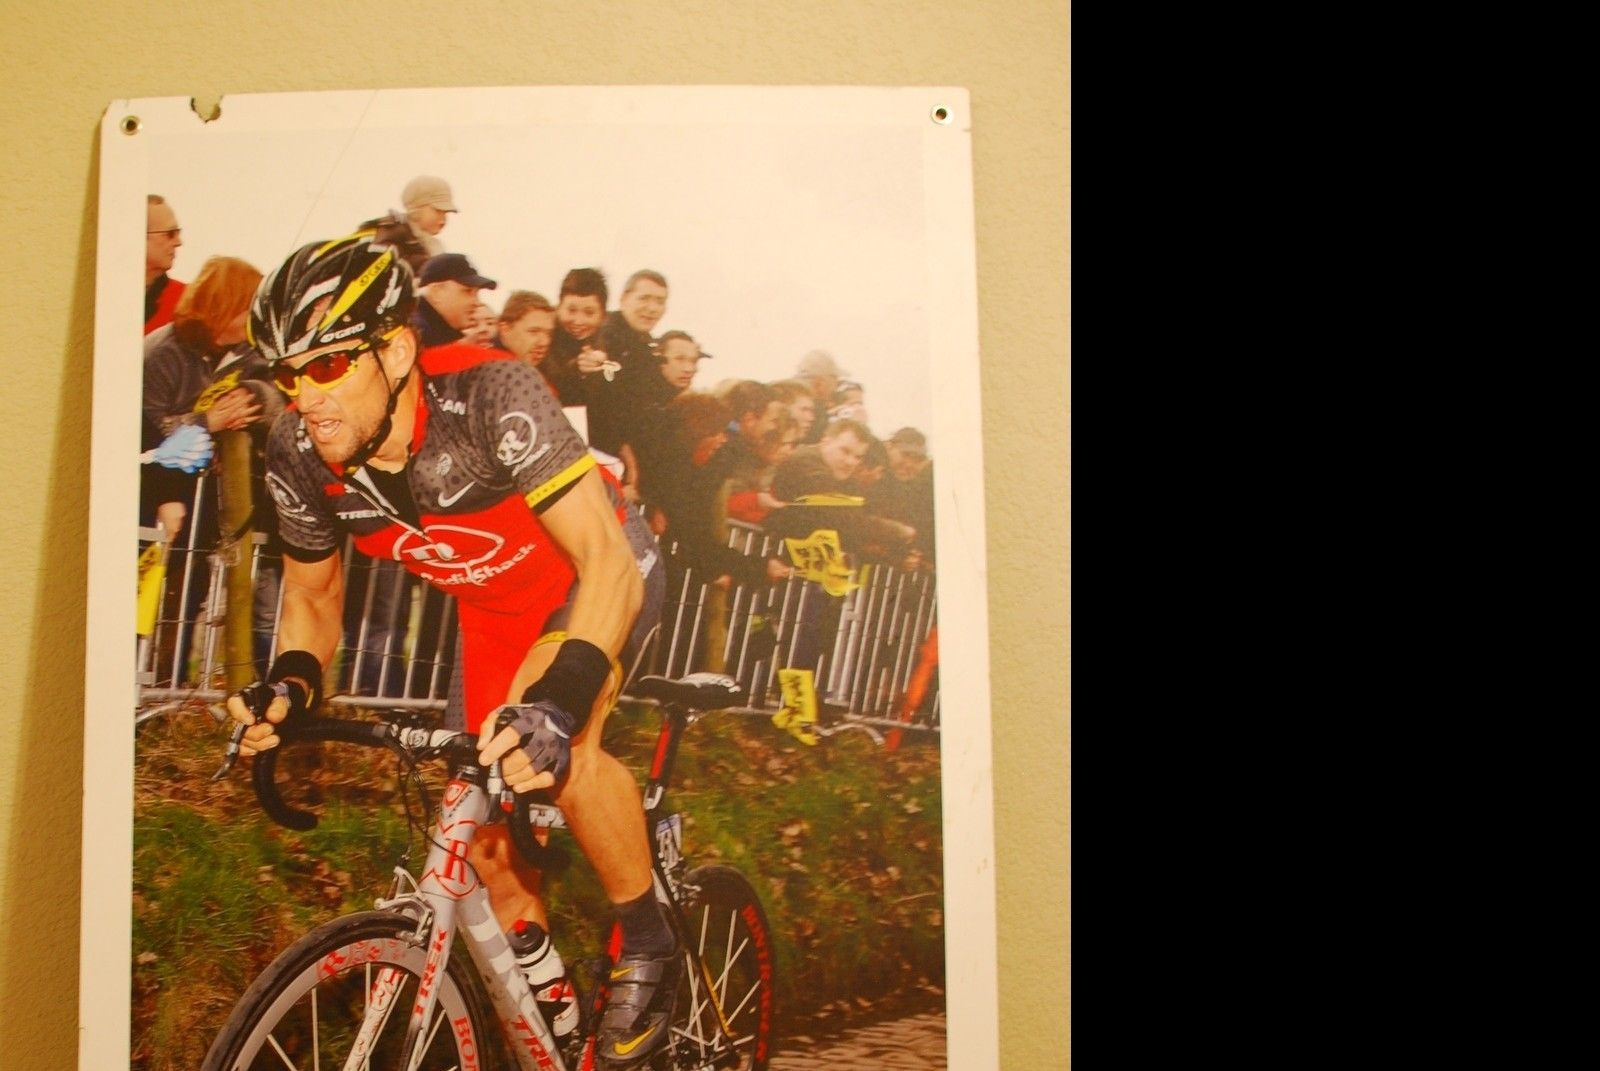 RARE Lance Armstrong Store Front Poster Displays - DFW Texas - mv3c.JPG